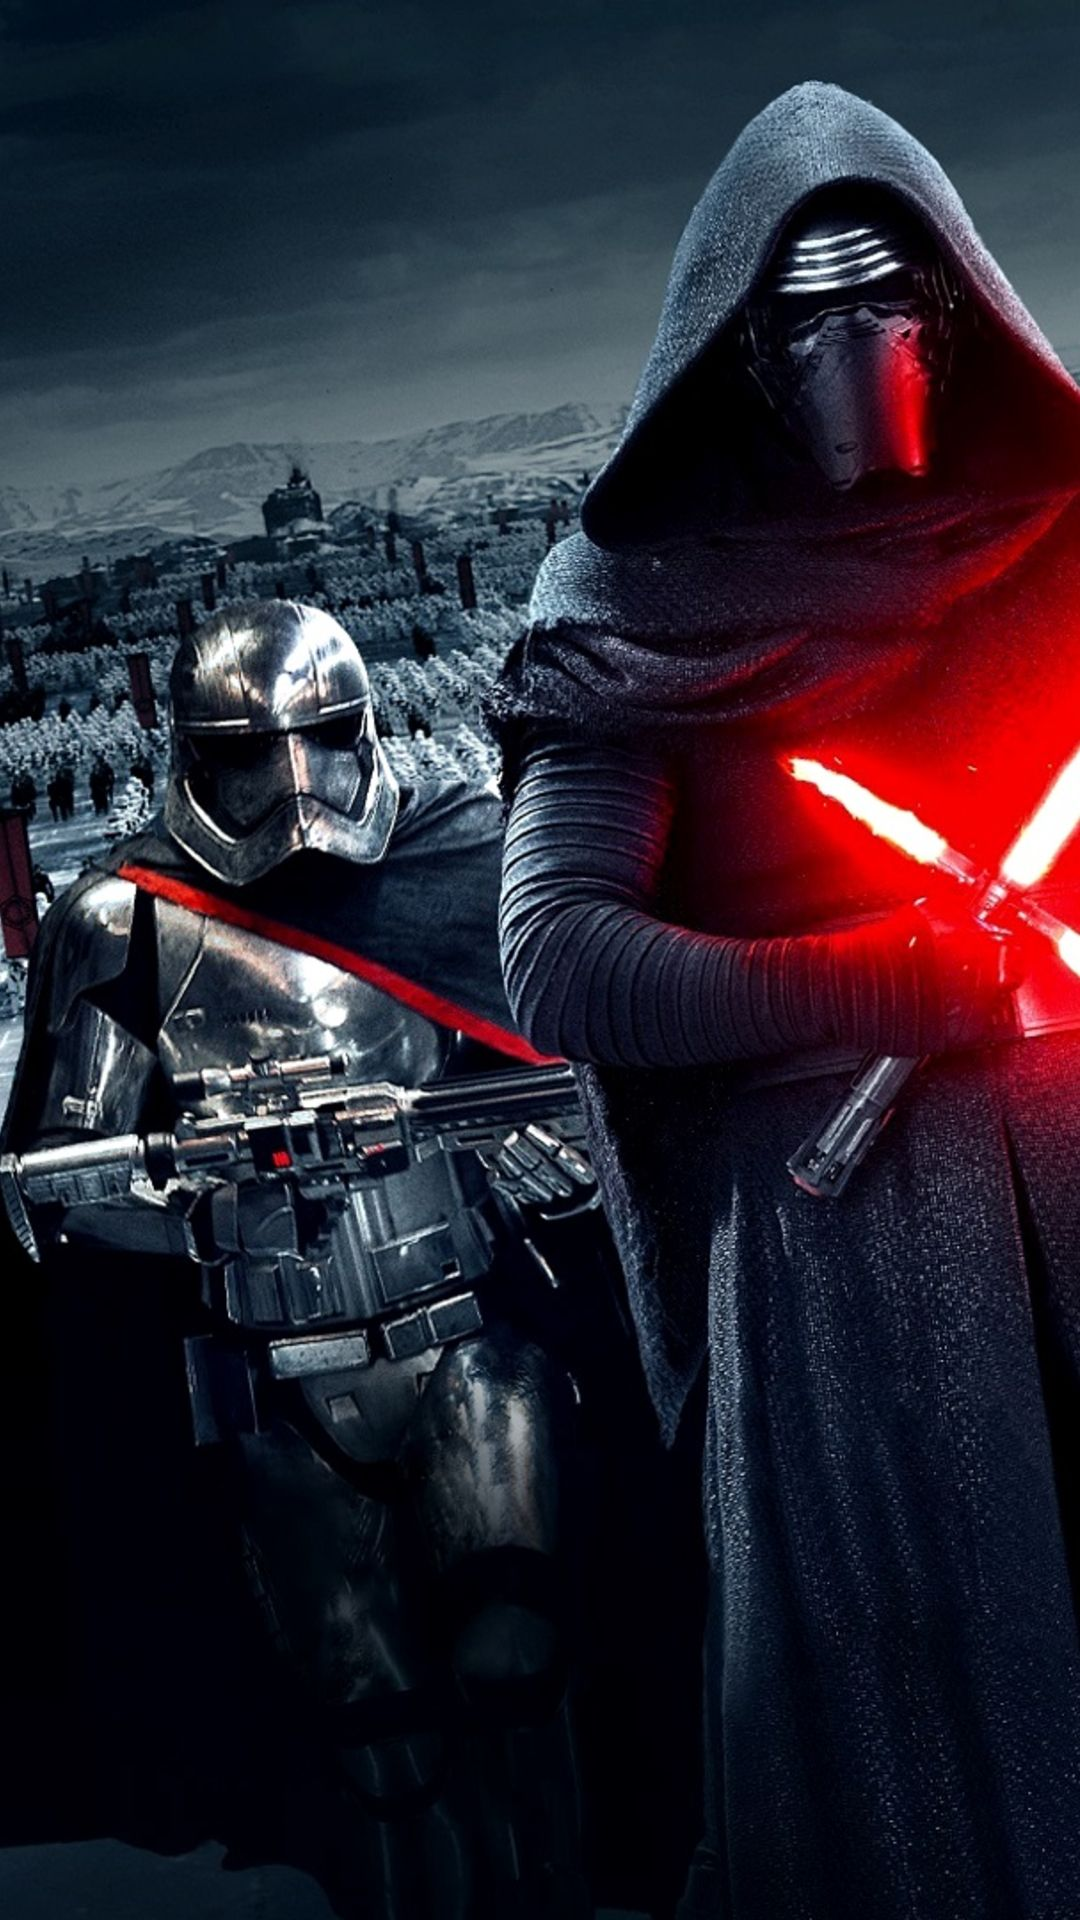 Star Wars The Force Awakens Wallpaper Kylo Ren Captain Phasma